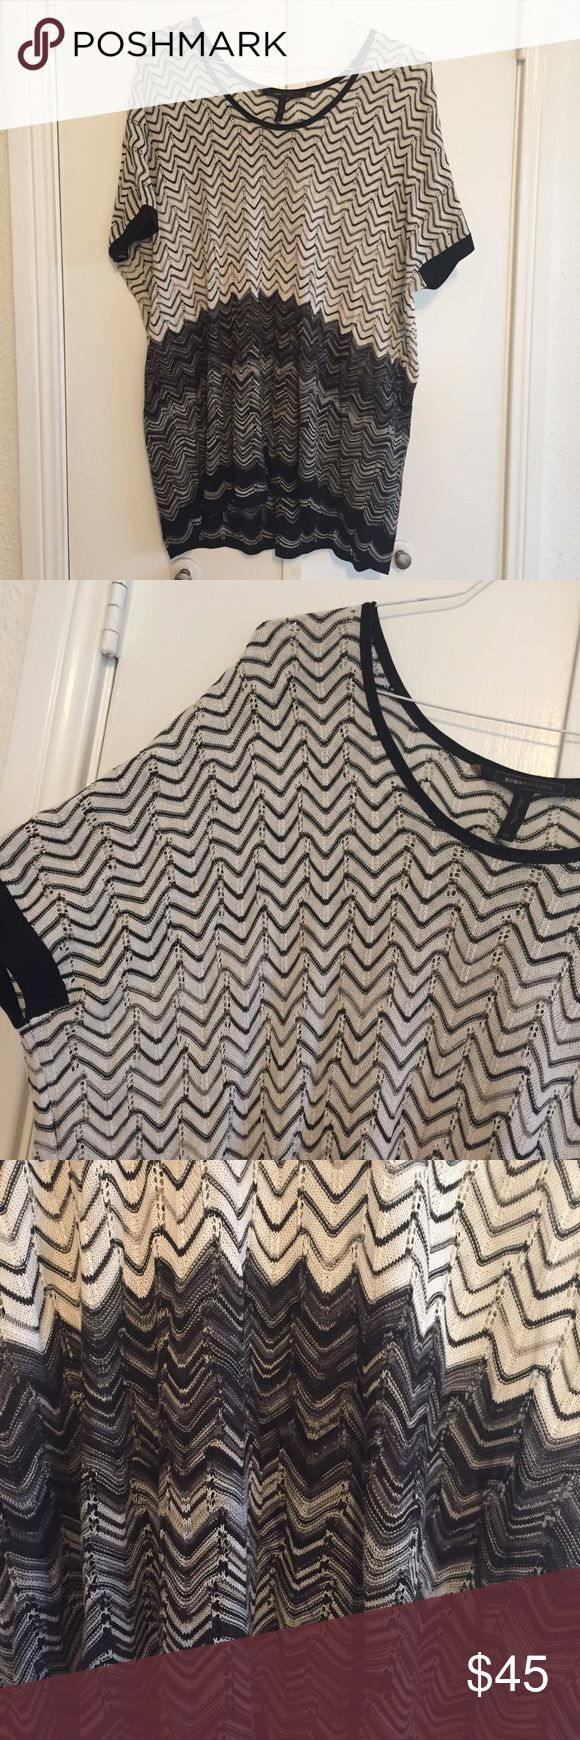 Black and white missoni-like top - one size BCBG Maxazaria Black and white missoni-like top. One size. Very light breathable fabric. I've worn as a swim coverup, a dress, and an oversized top with flares. Very cool and retro. BCBGMaxAzria Tops Tunics